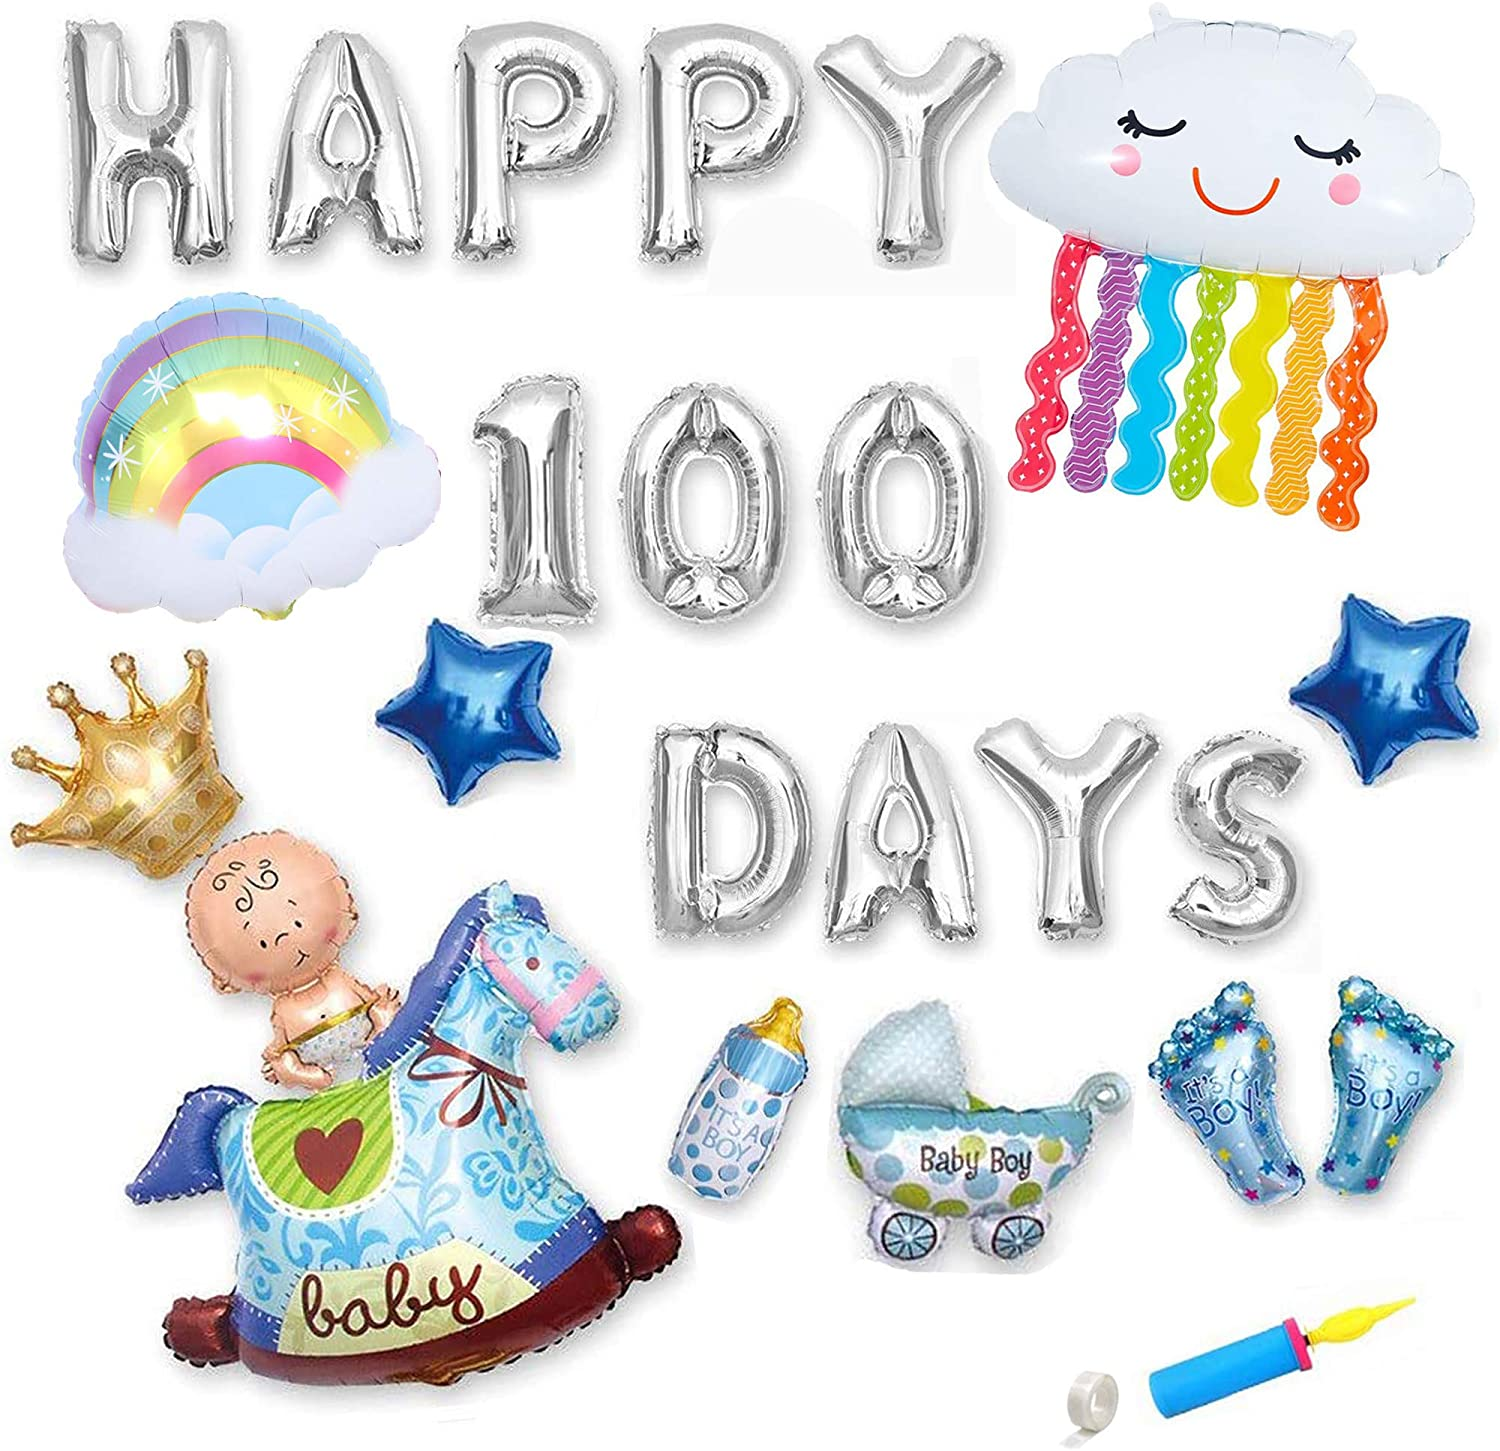 100 Days Foil Balloons Banner, Baby's 100 Days Themed Party Decorations, Baby Boy Happy 100 Days Party Decorations Supplies (Silver). Foil Balloons Birthday Party Set, Baby Shower Decorations, Cute Rainbow Balloons